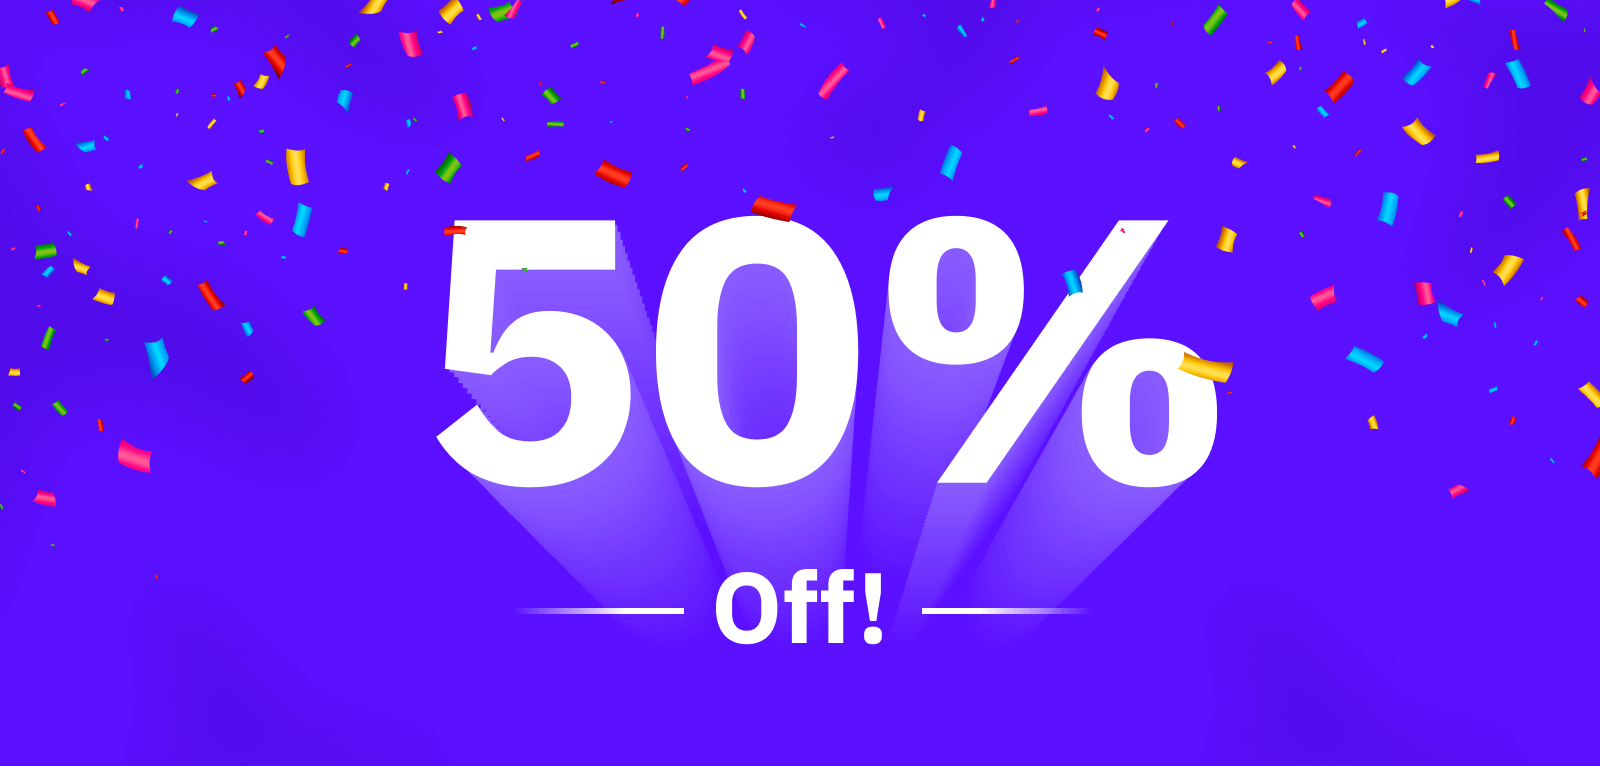 Buy BTC and ETH at 50% off with Cake's VIP Program! 🎉